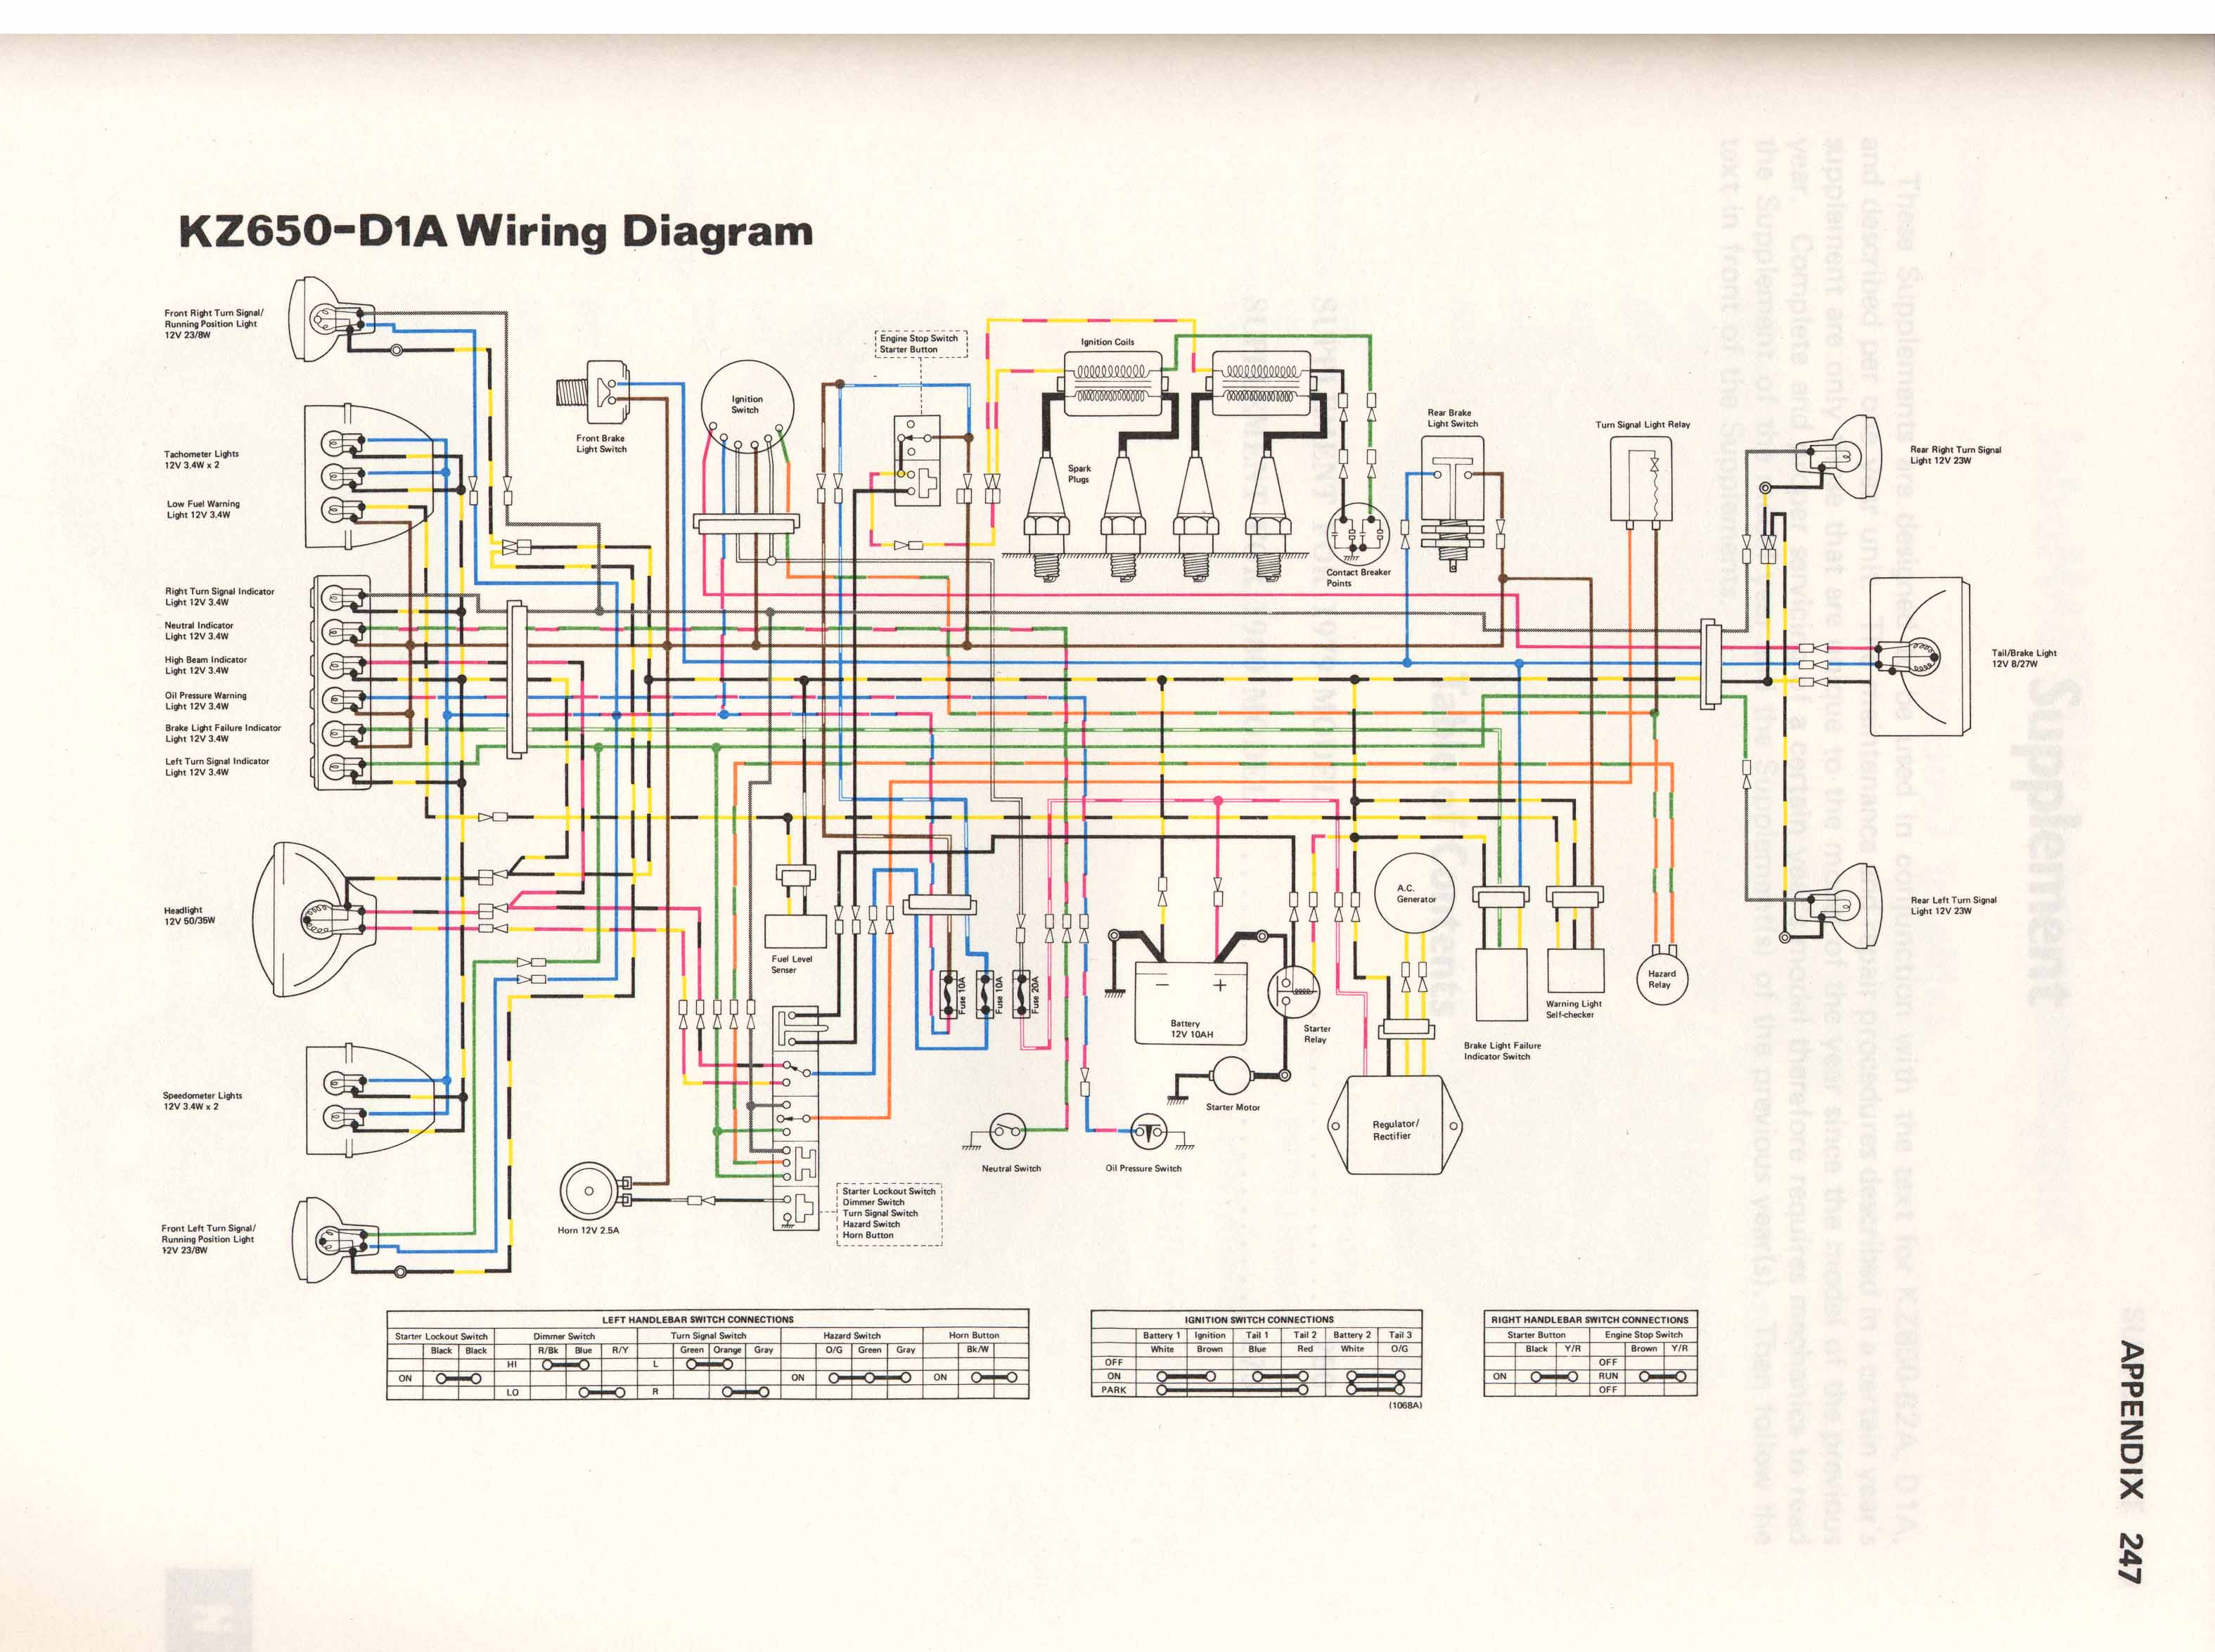 1977 kawasaki kz1000 wiring diagram ford f150 kz650 info diagrams